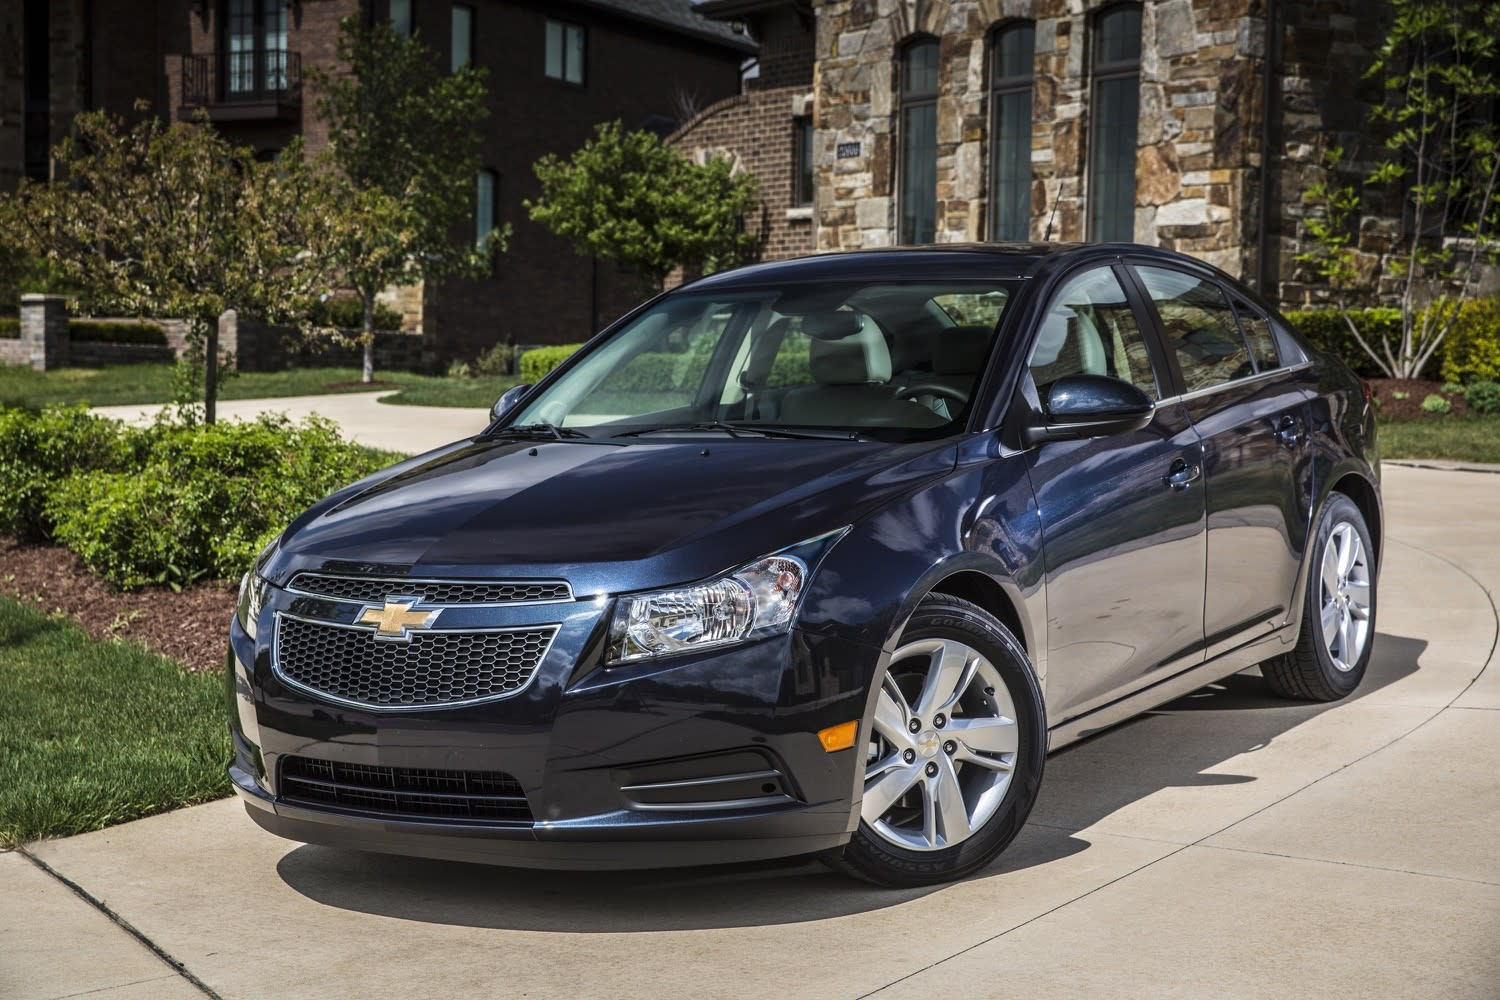 Lawsuit alleges Chevrolet Cruze Diesel used illegal software on emissions tests